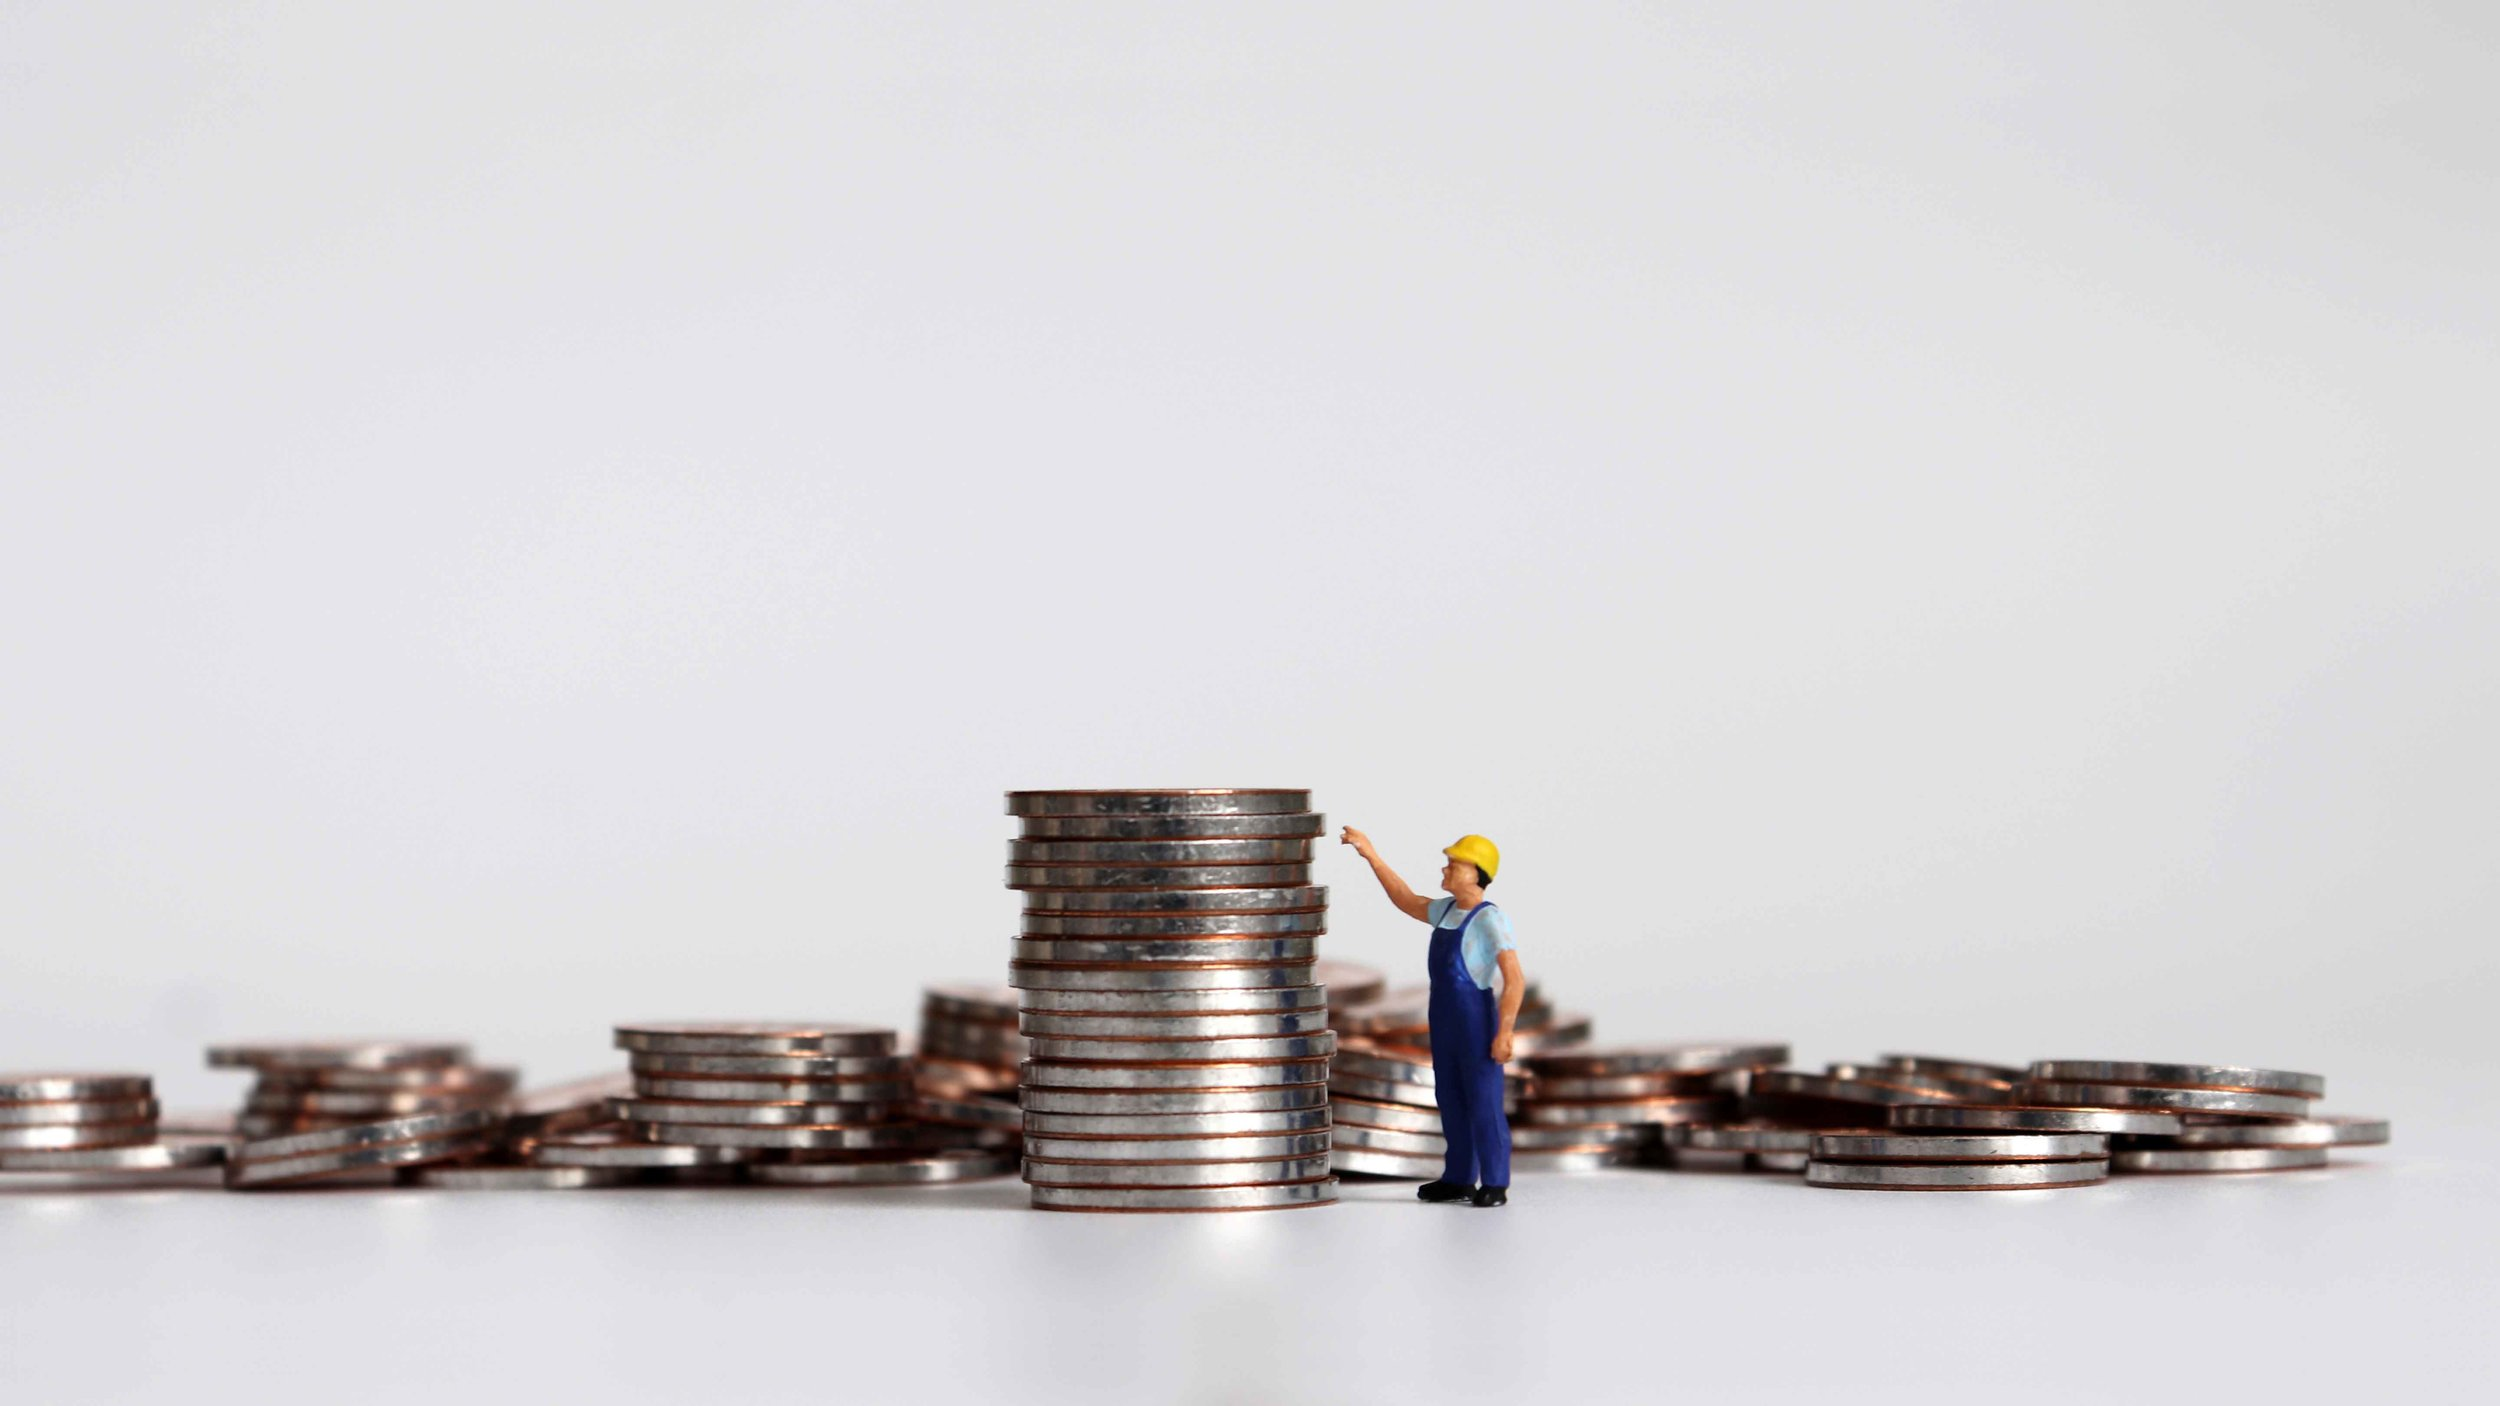 A-miniature-worker-pointing-at-a-pile-of-coins.jpg